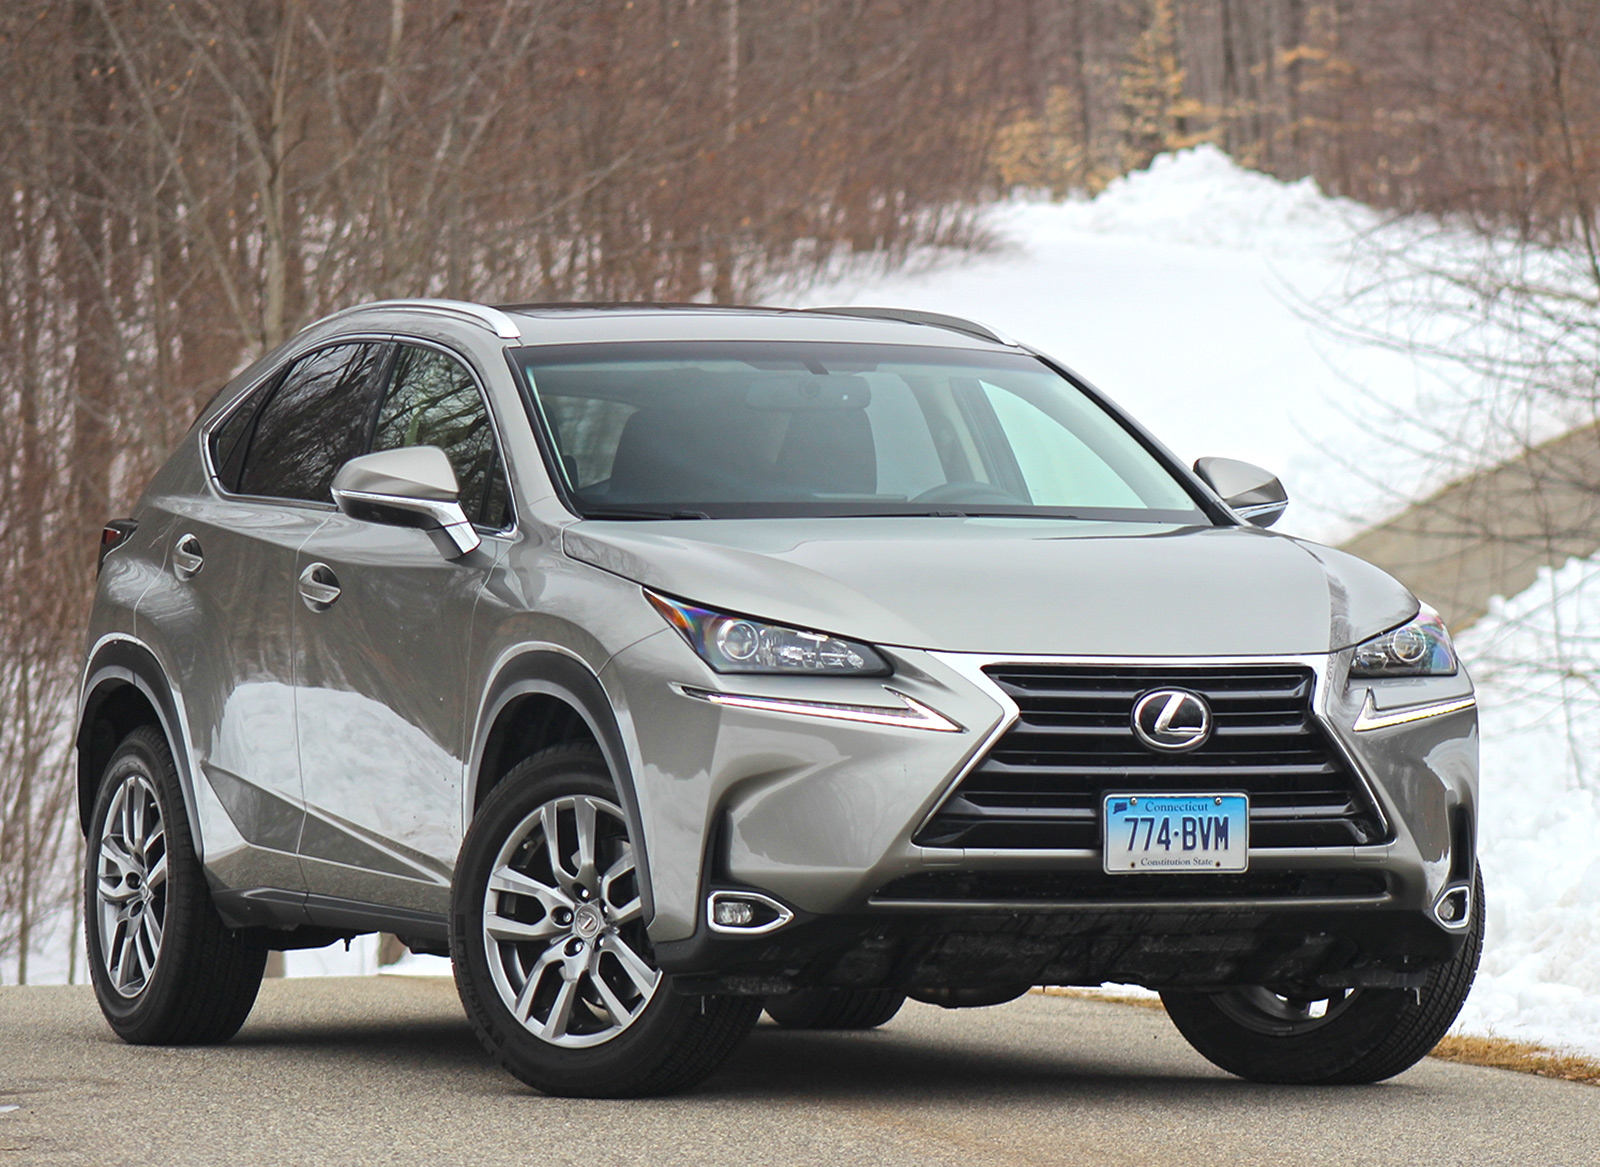 f carsnews but t match awd news lexus nx aggressively the designed not sport does promise numbers